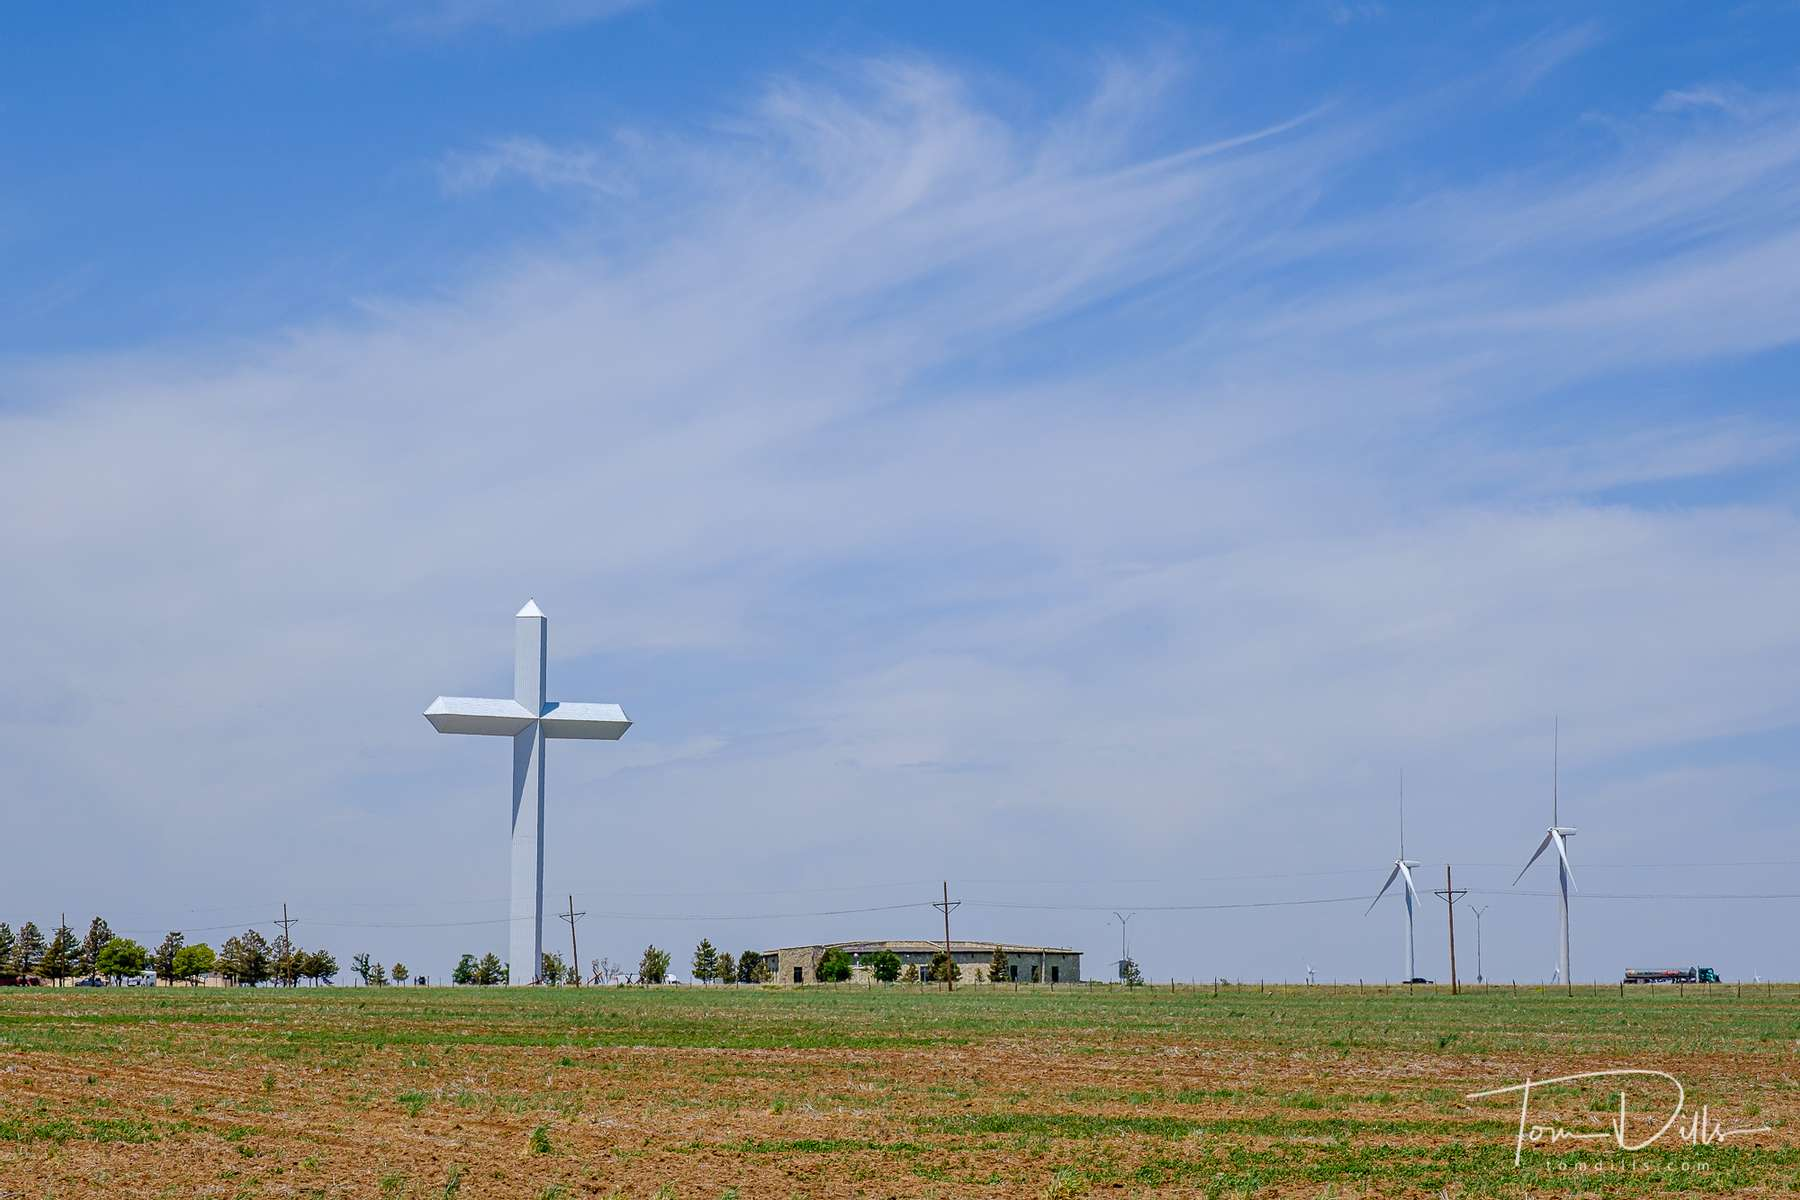 {quote}Cross of our Lord Jesus Christ Ministries{quote} near Groom, Texas